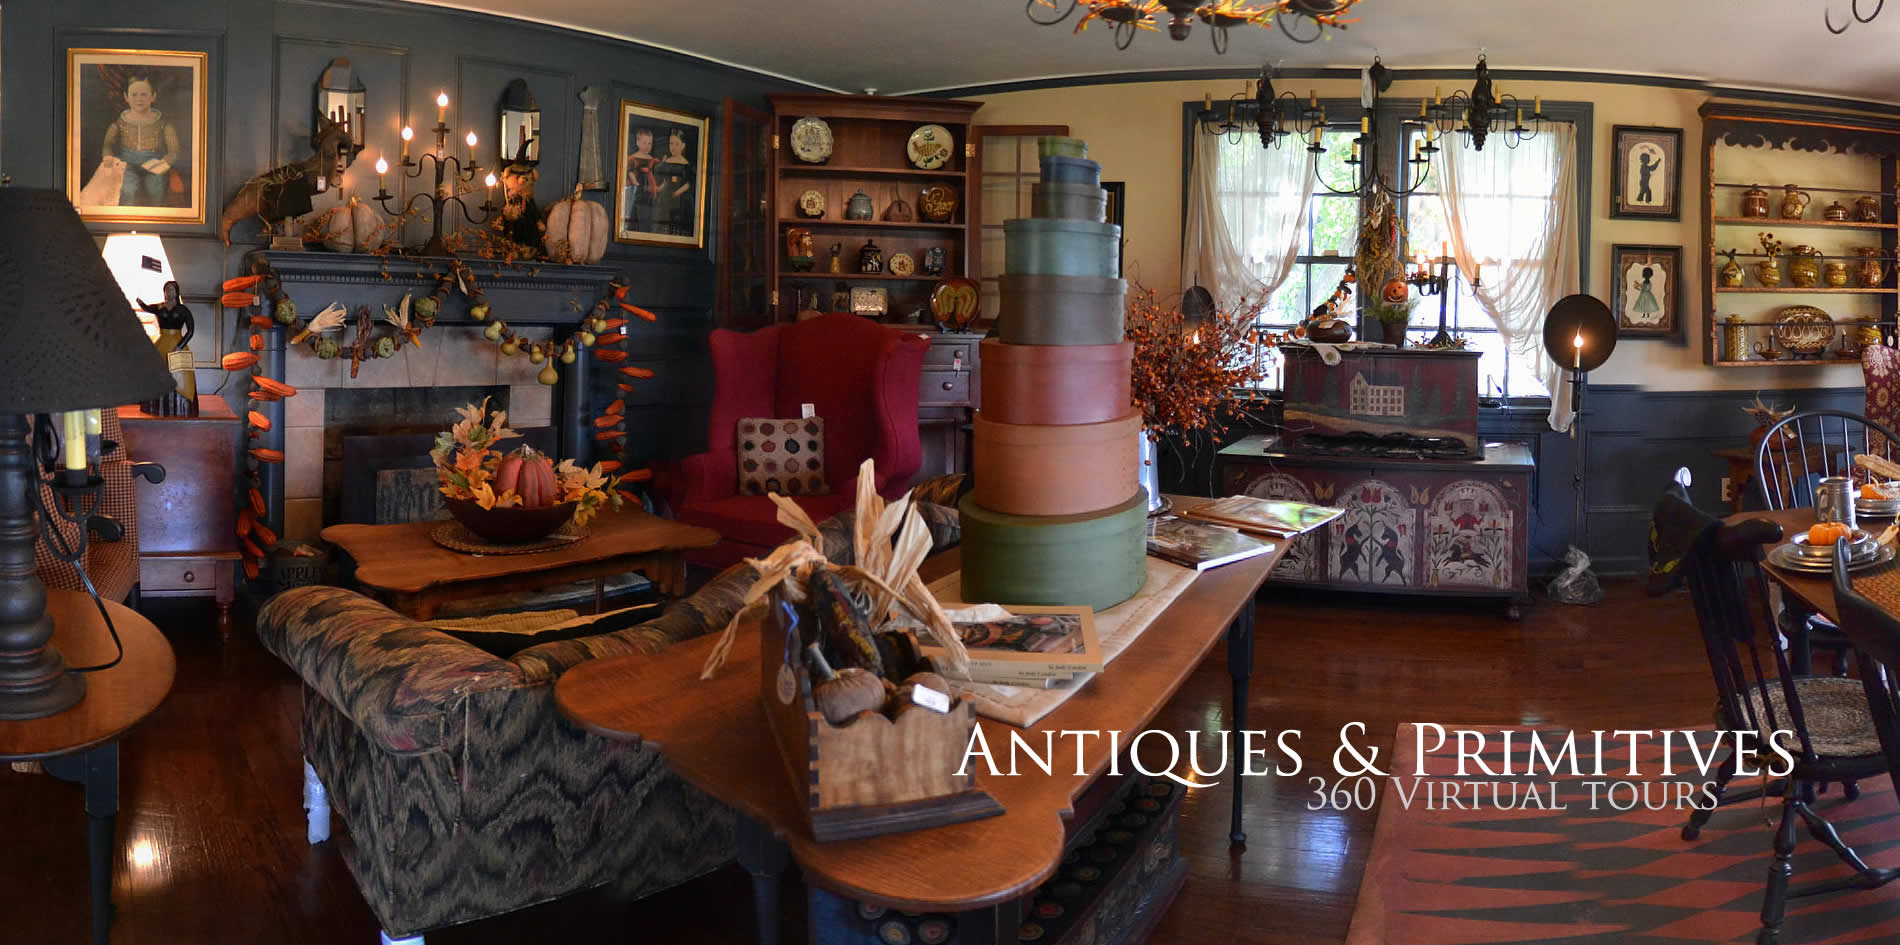 Antiques and Primitives shopping in the south